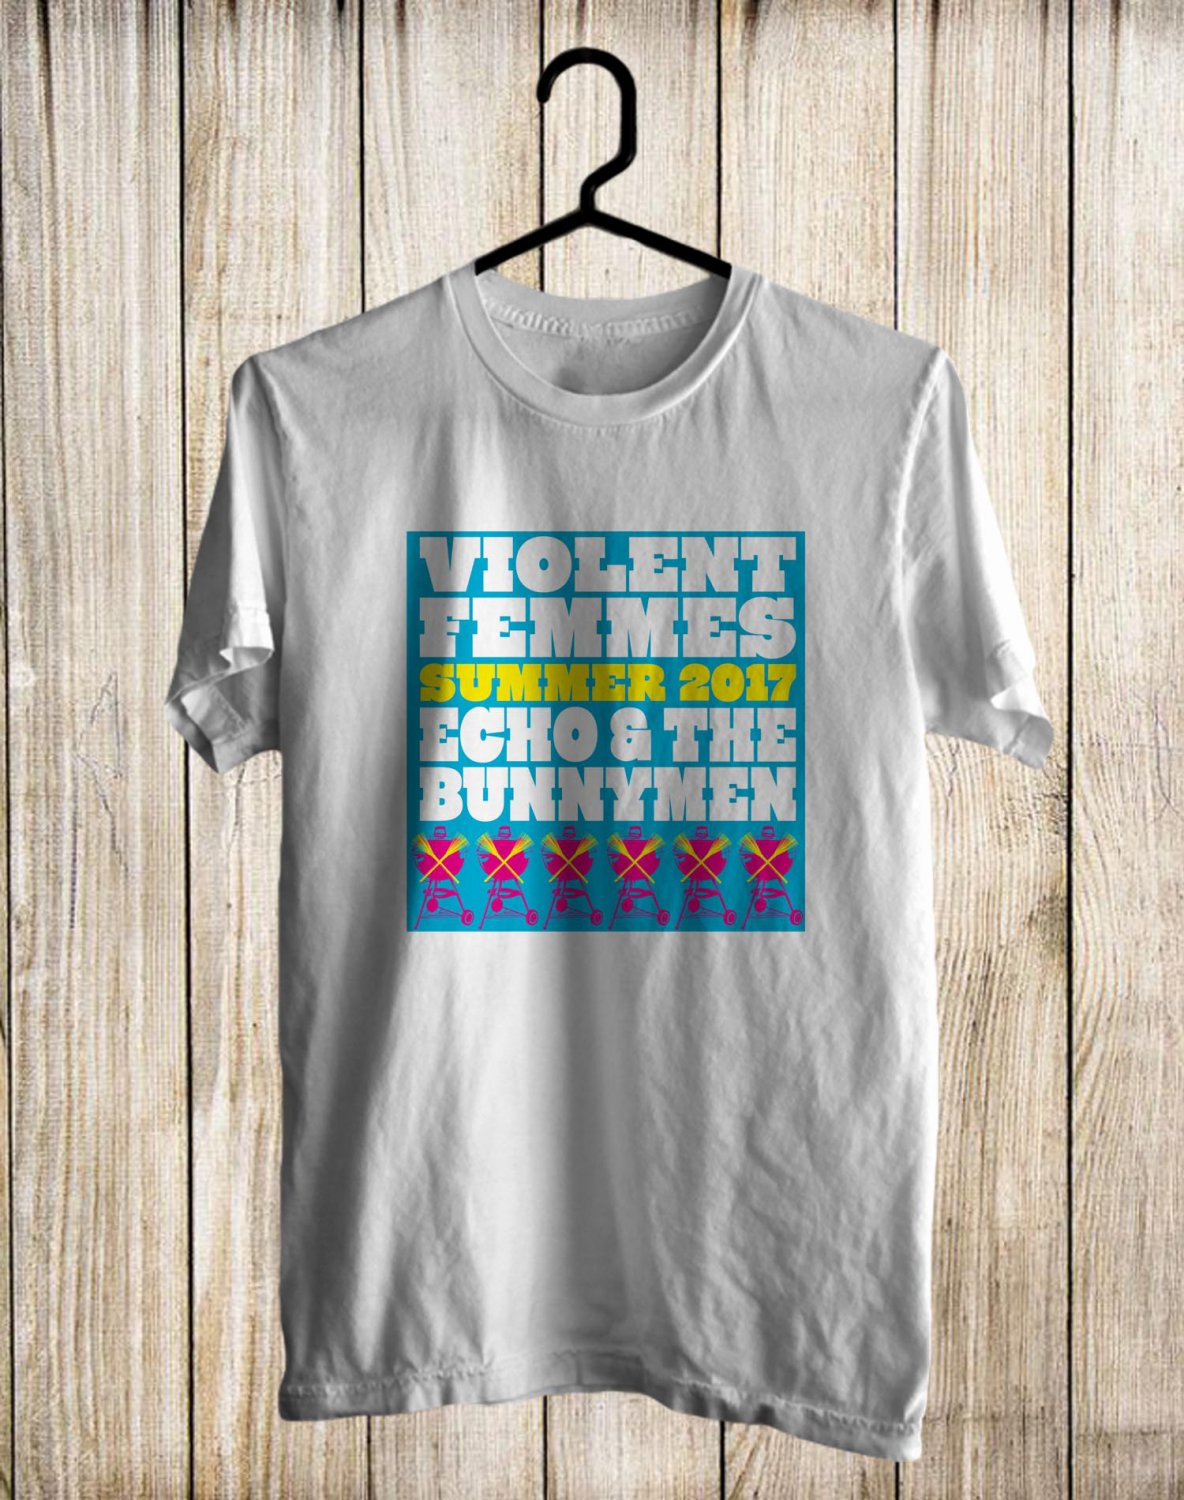 Violent Femmes and Echo&The Bunnymen Tour 2017 White Tee's Front Side by Complexart